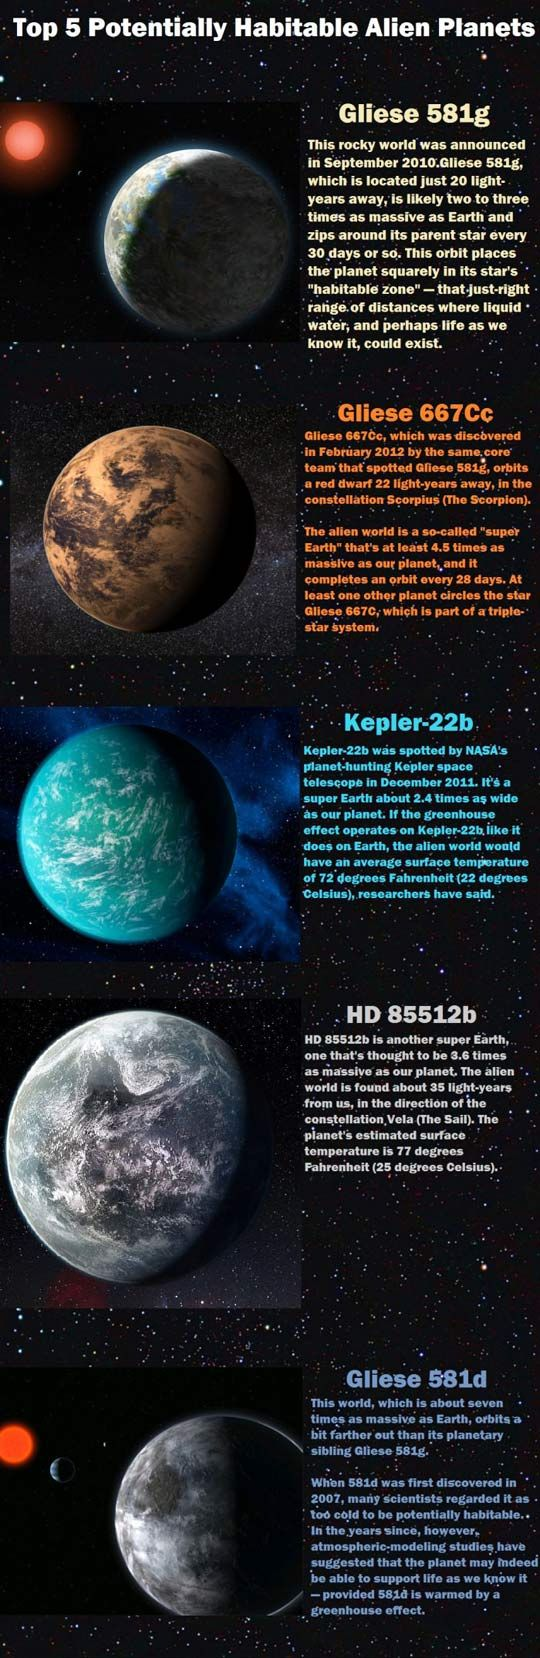 Top 5 Potentially Habitable Alien Planets ~ETS #space #astronomy #science